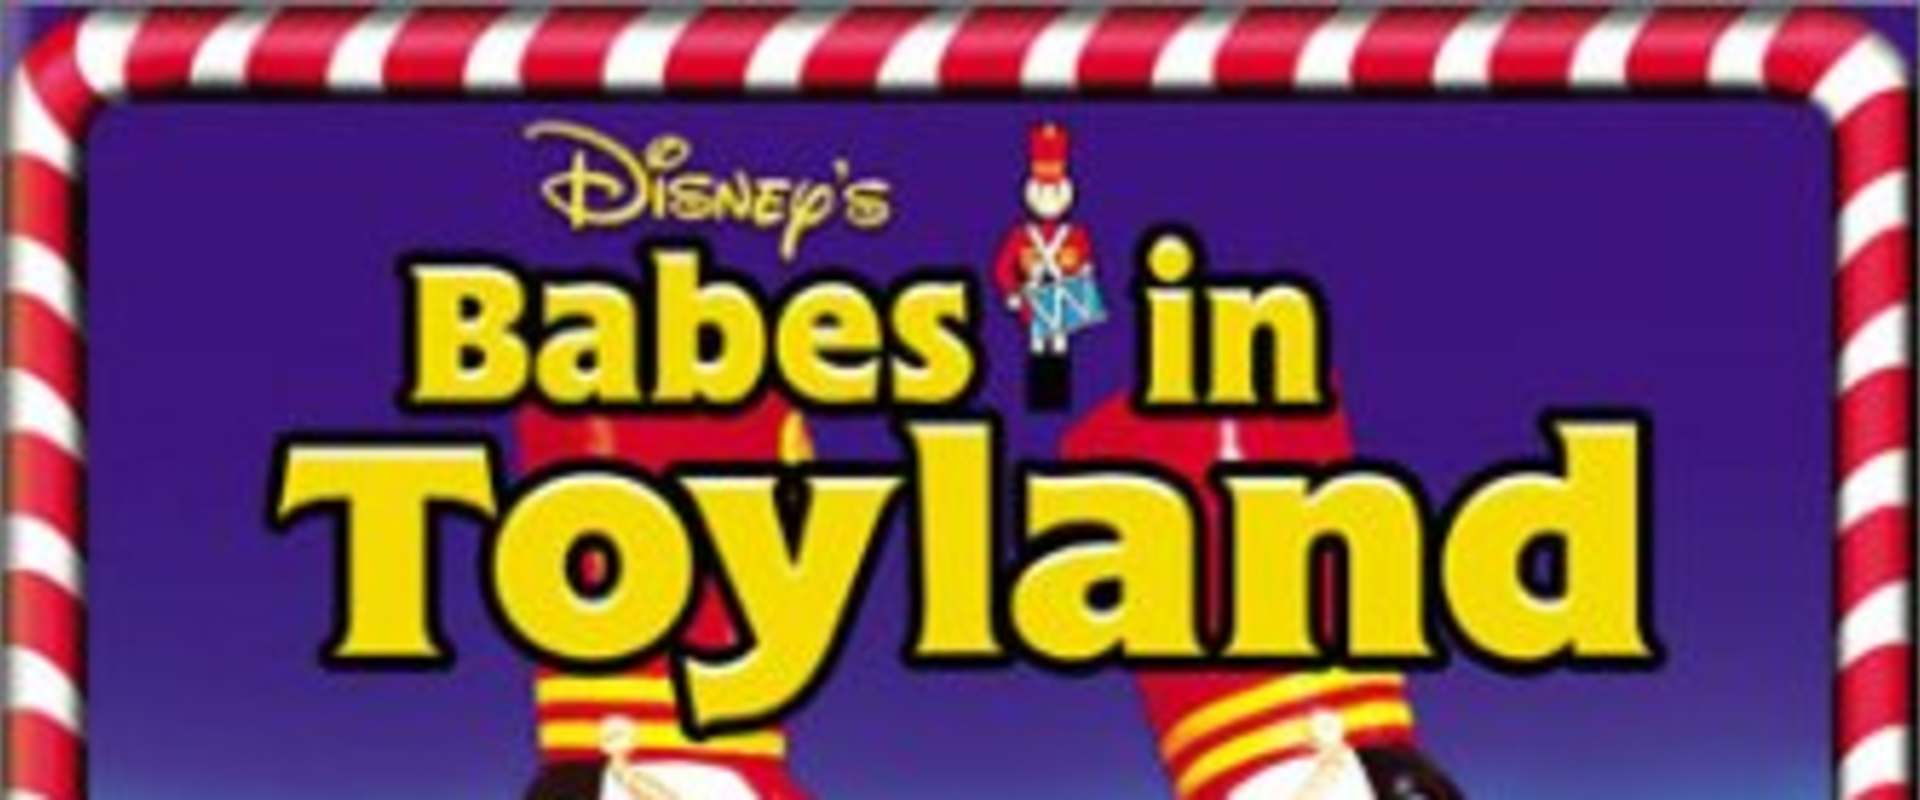 Babes in Toyland background 2